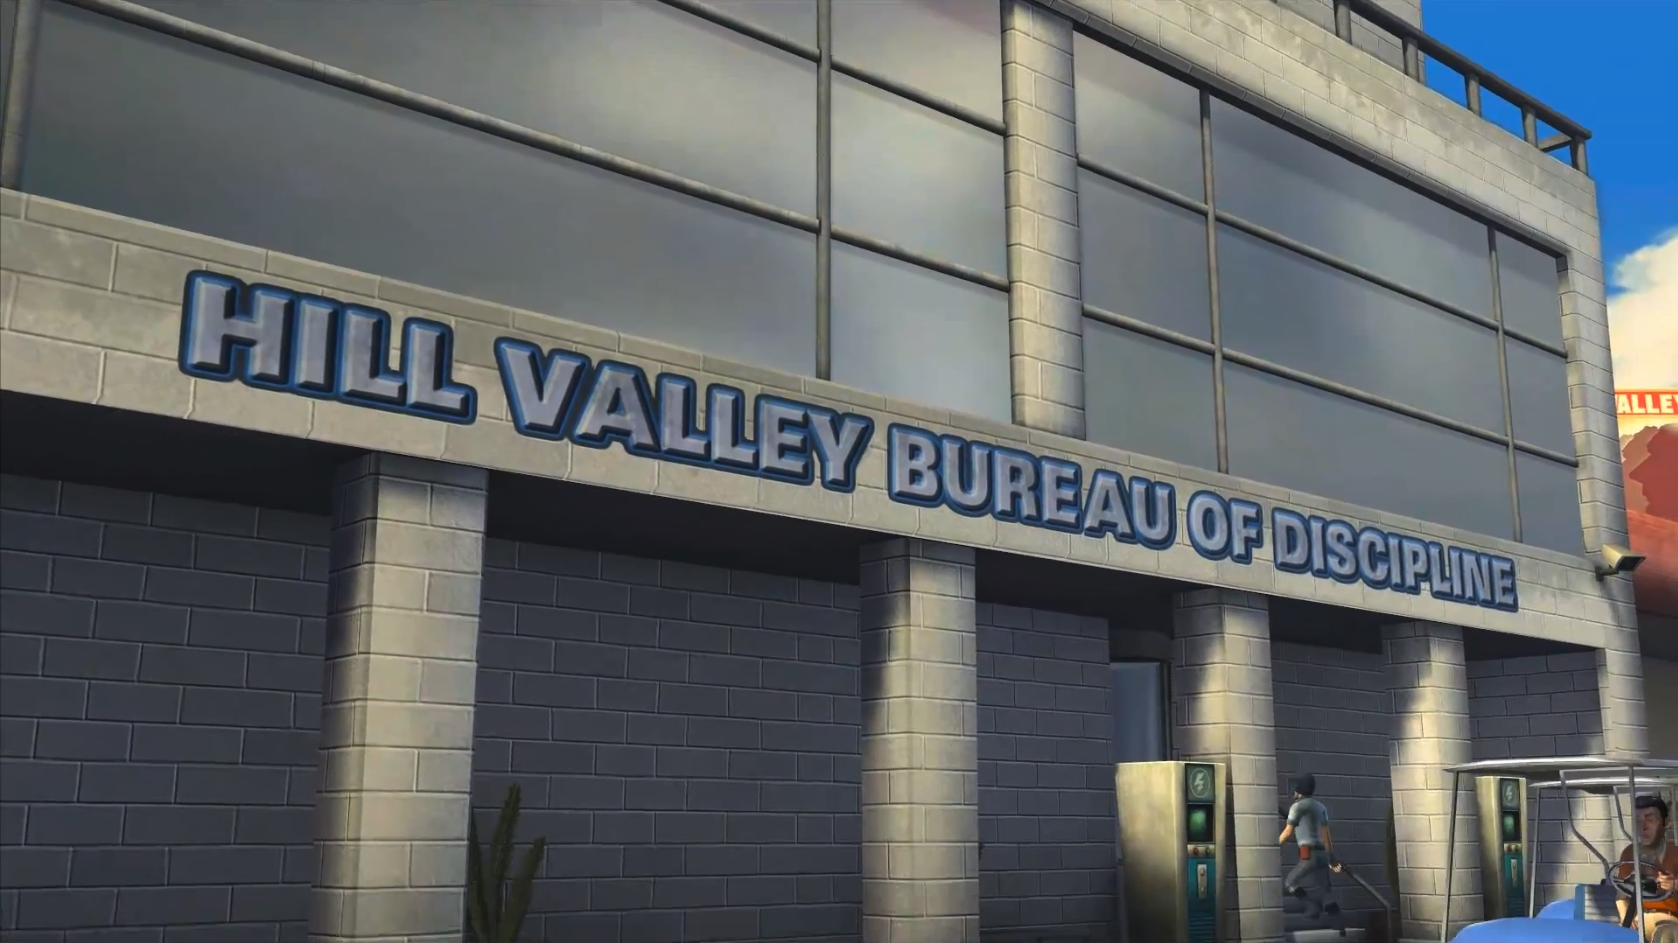 Hill Valley Bureau of Discipline